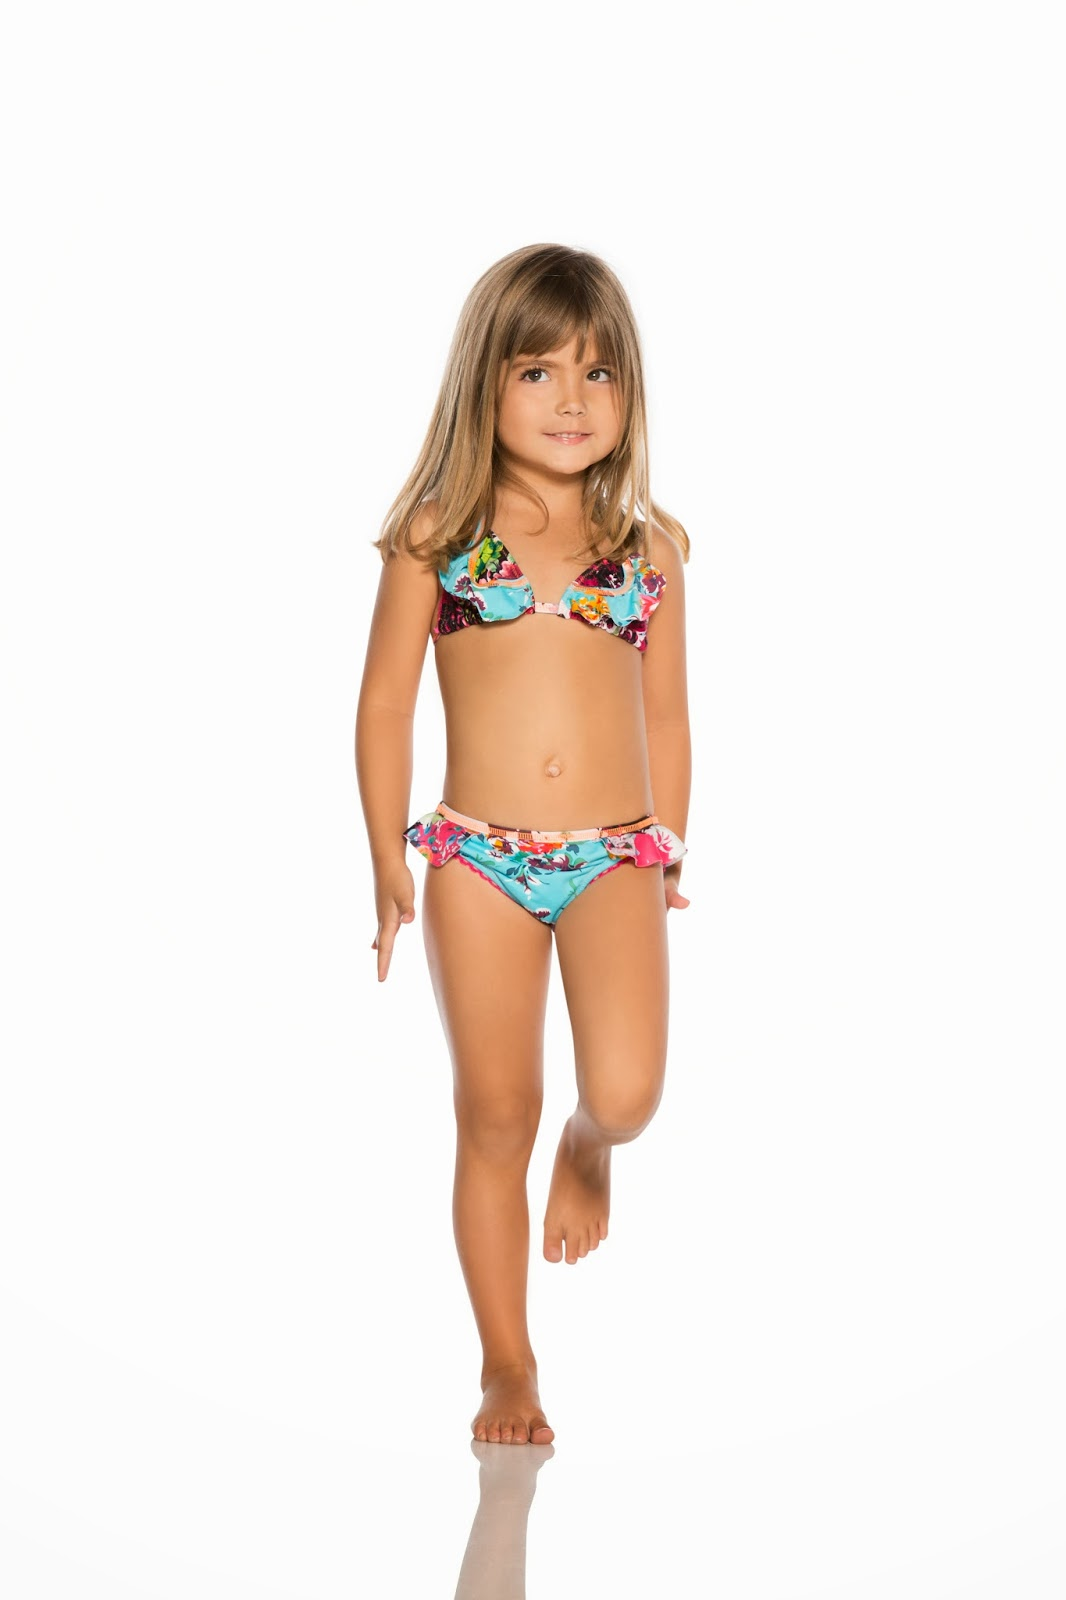 Incredibly cute selection of girls bikinis, girls swimsuits, girls coverups, beachwear and boys shorts.